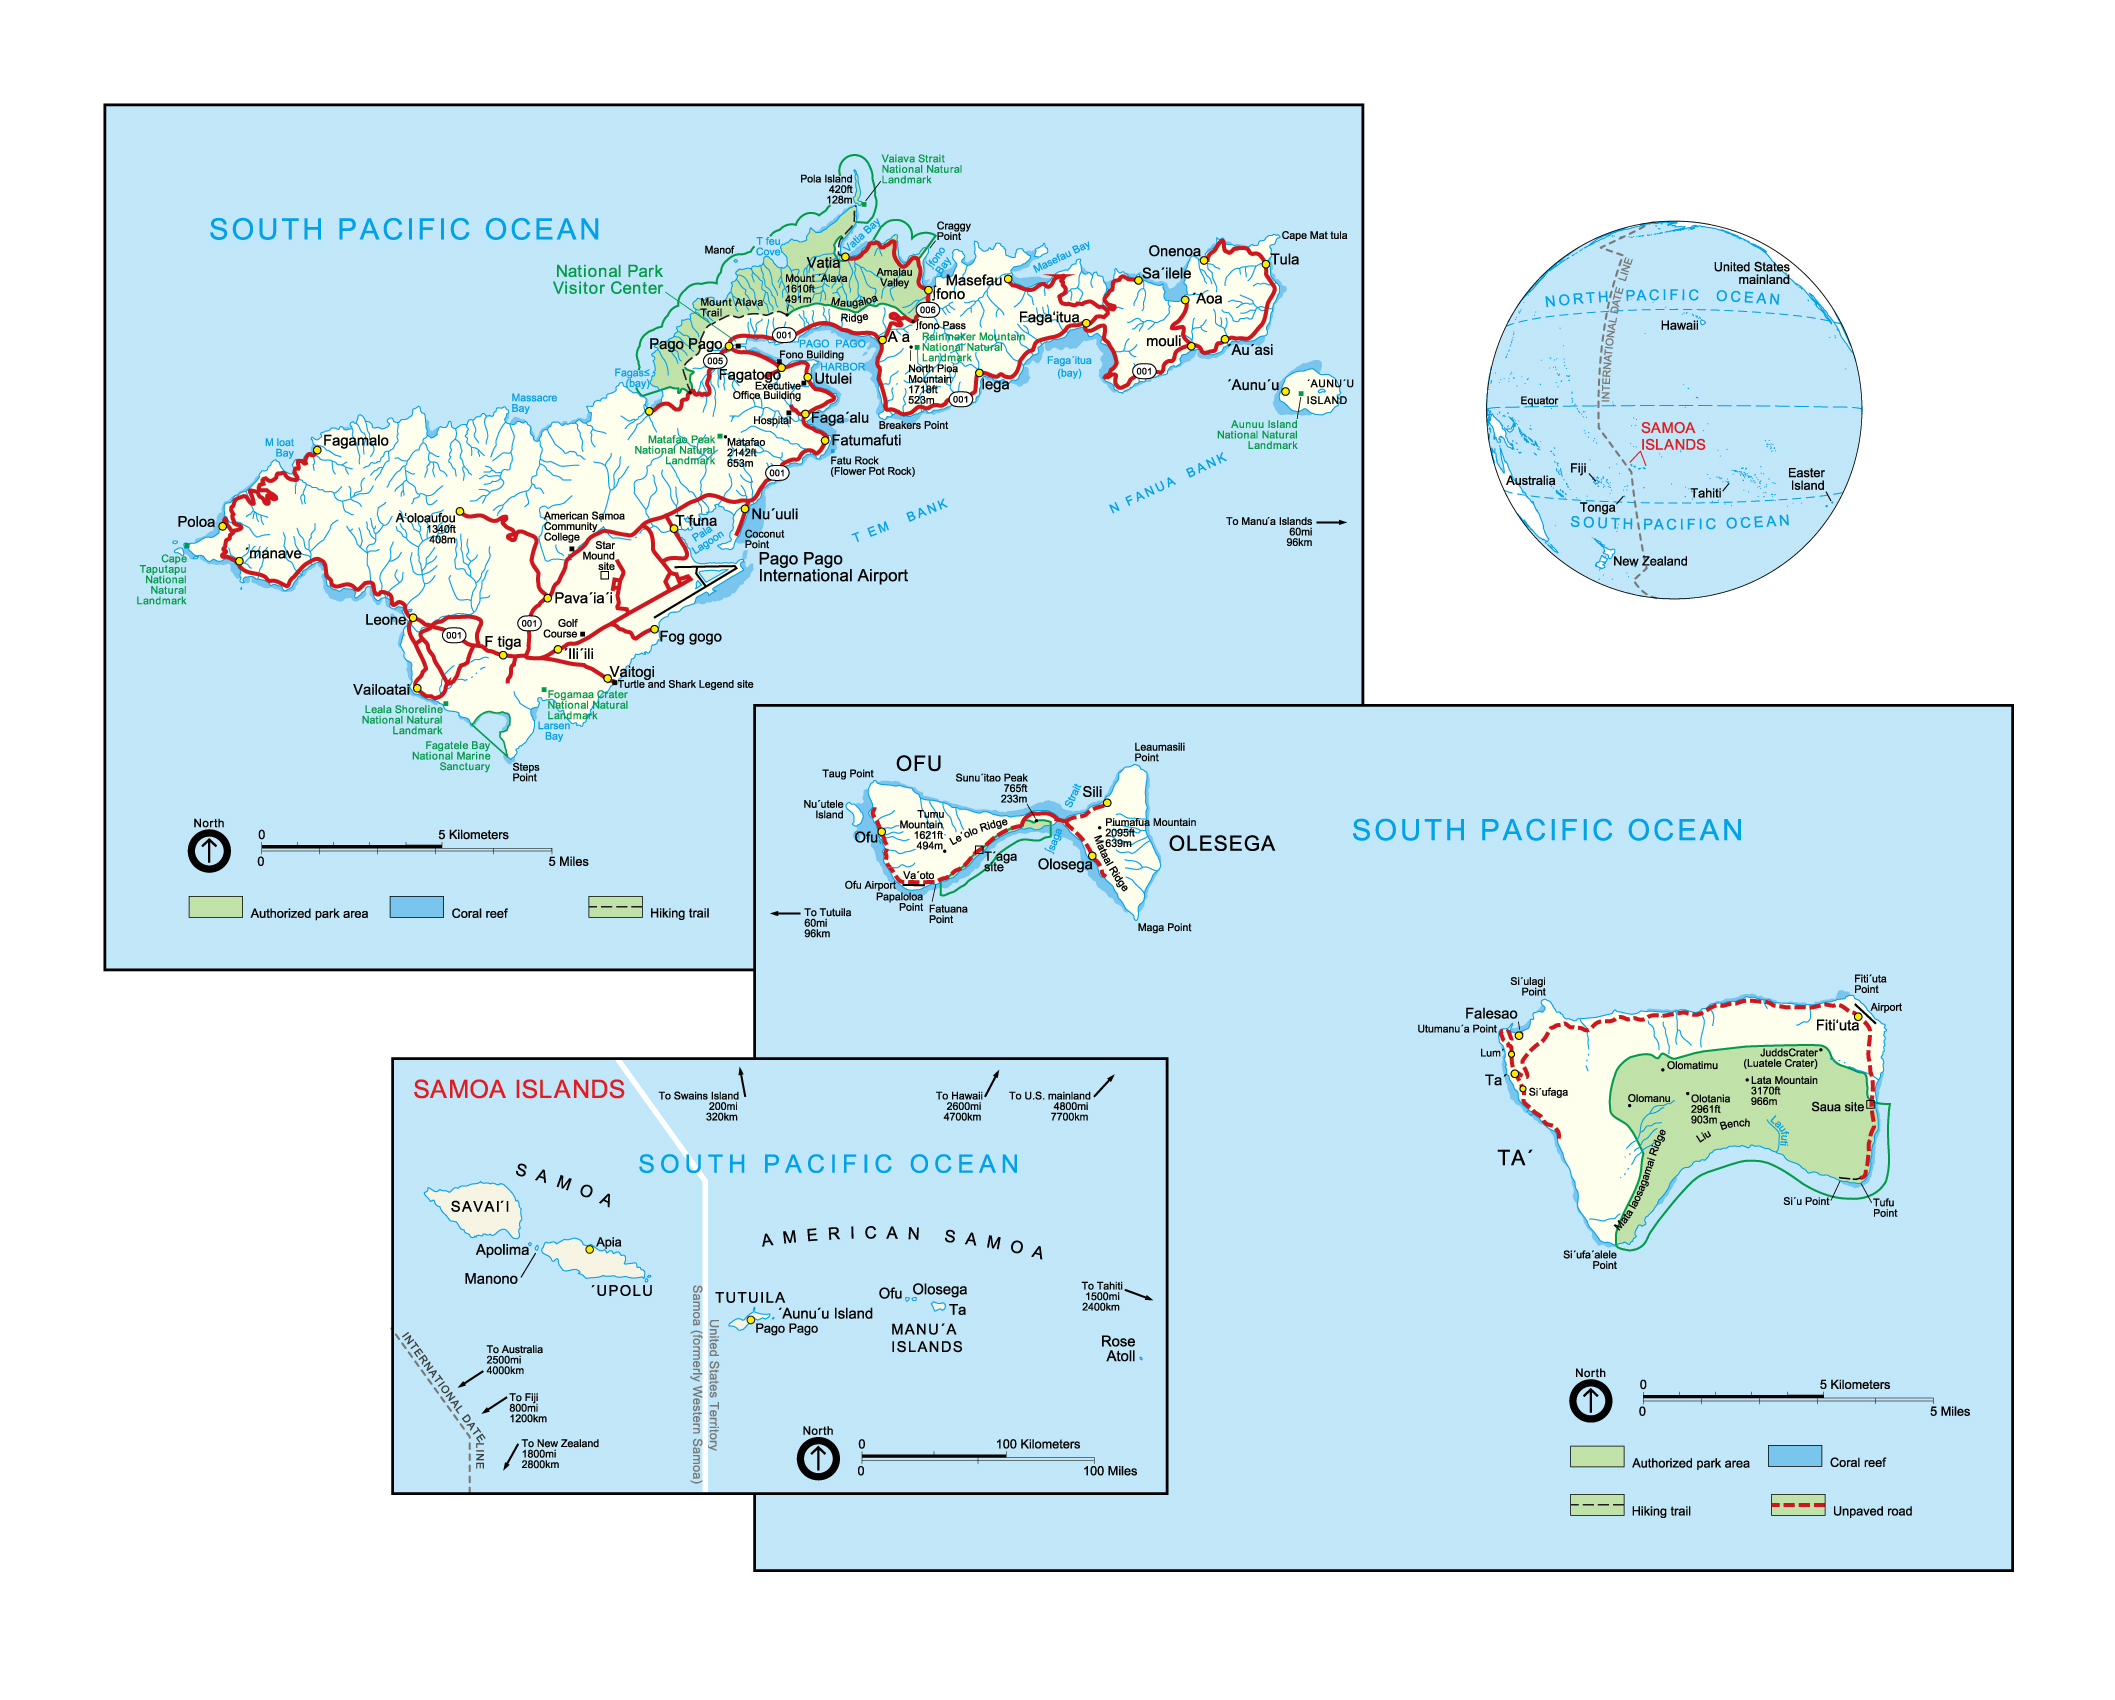 large political map of american samoa with other marks